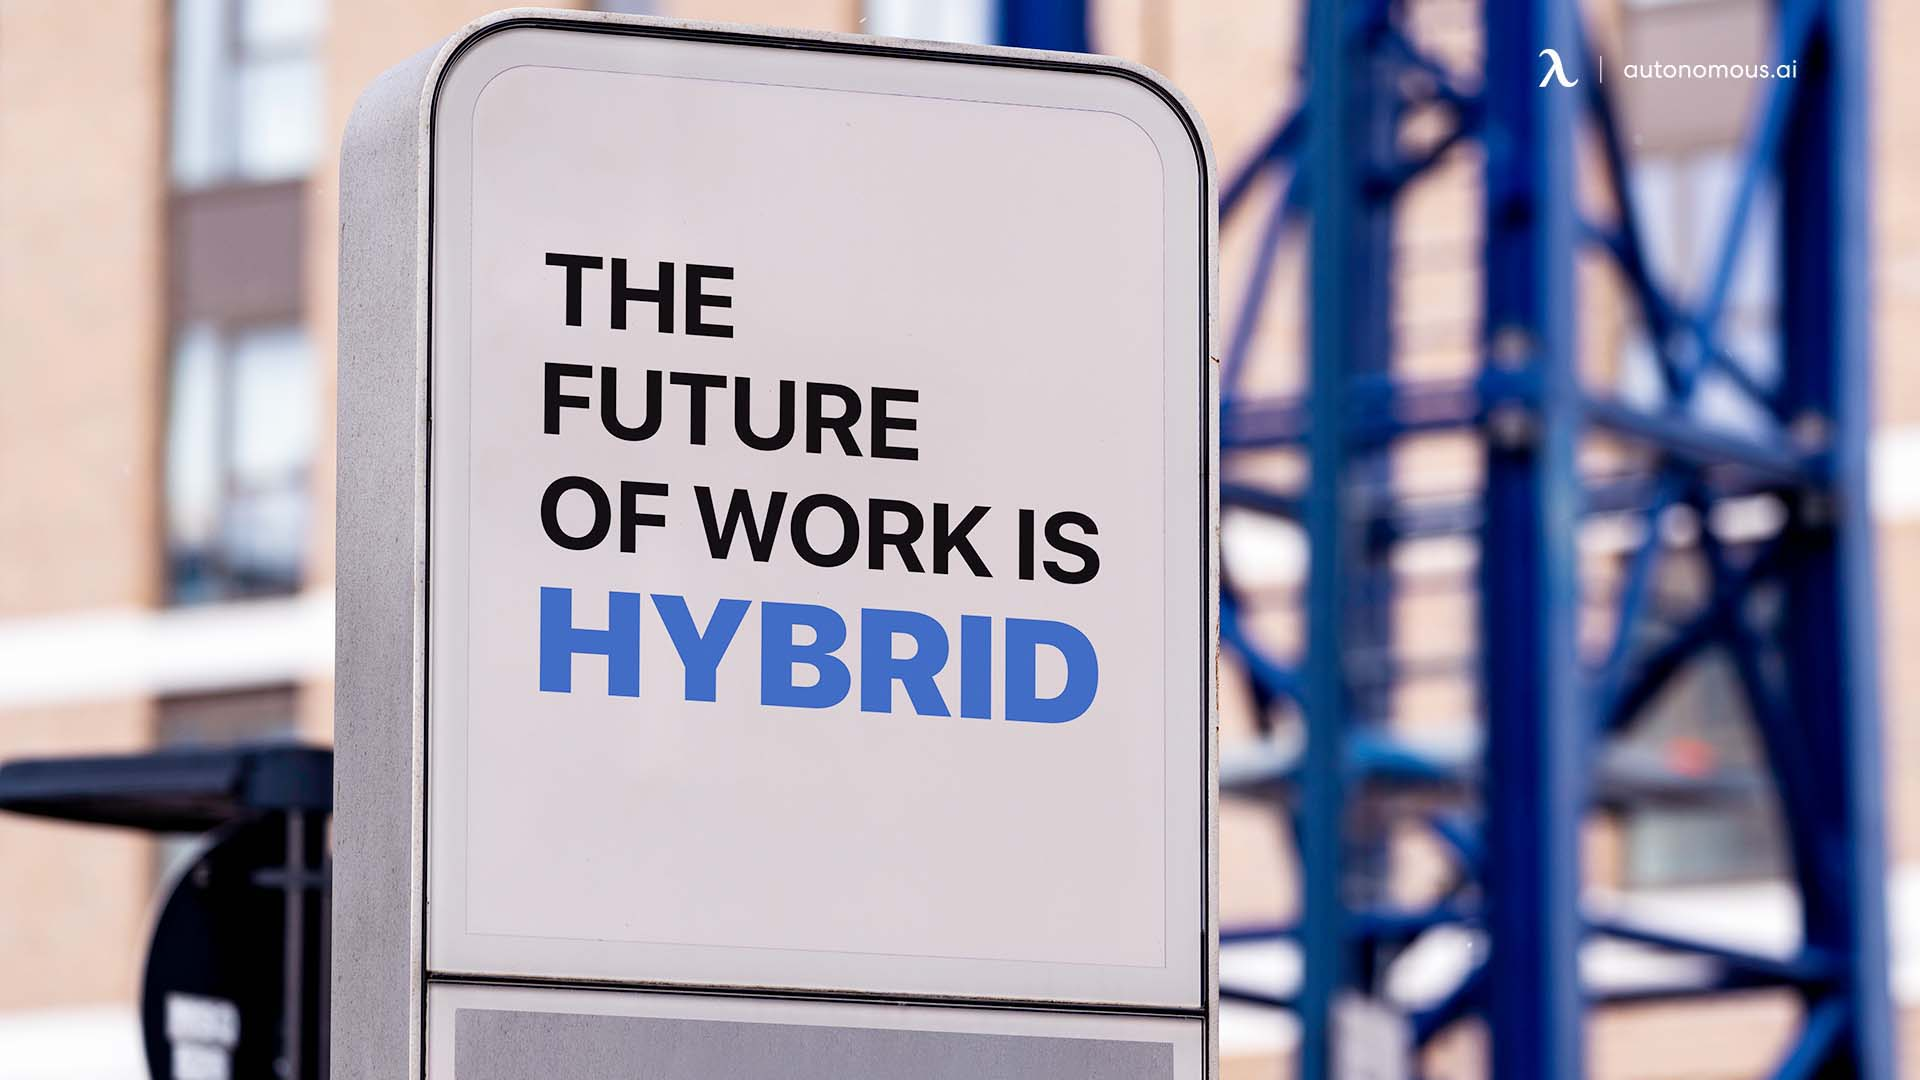 Hybrid Work Model as a New Normal